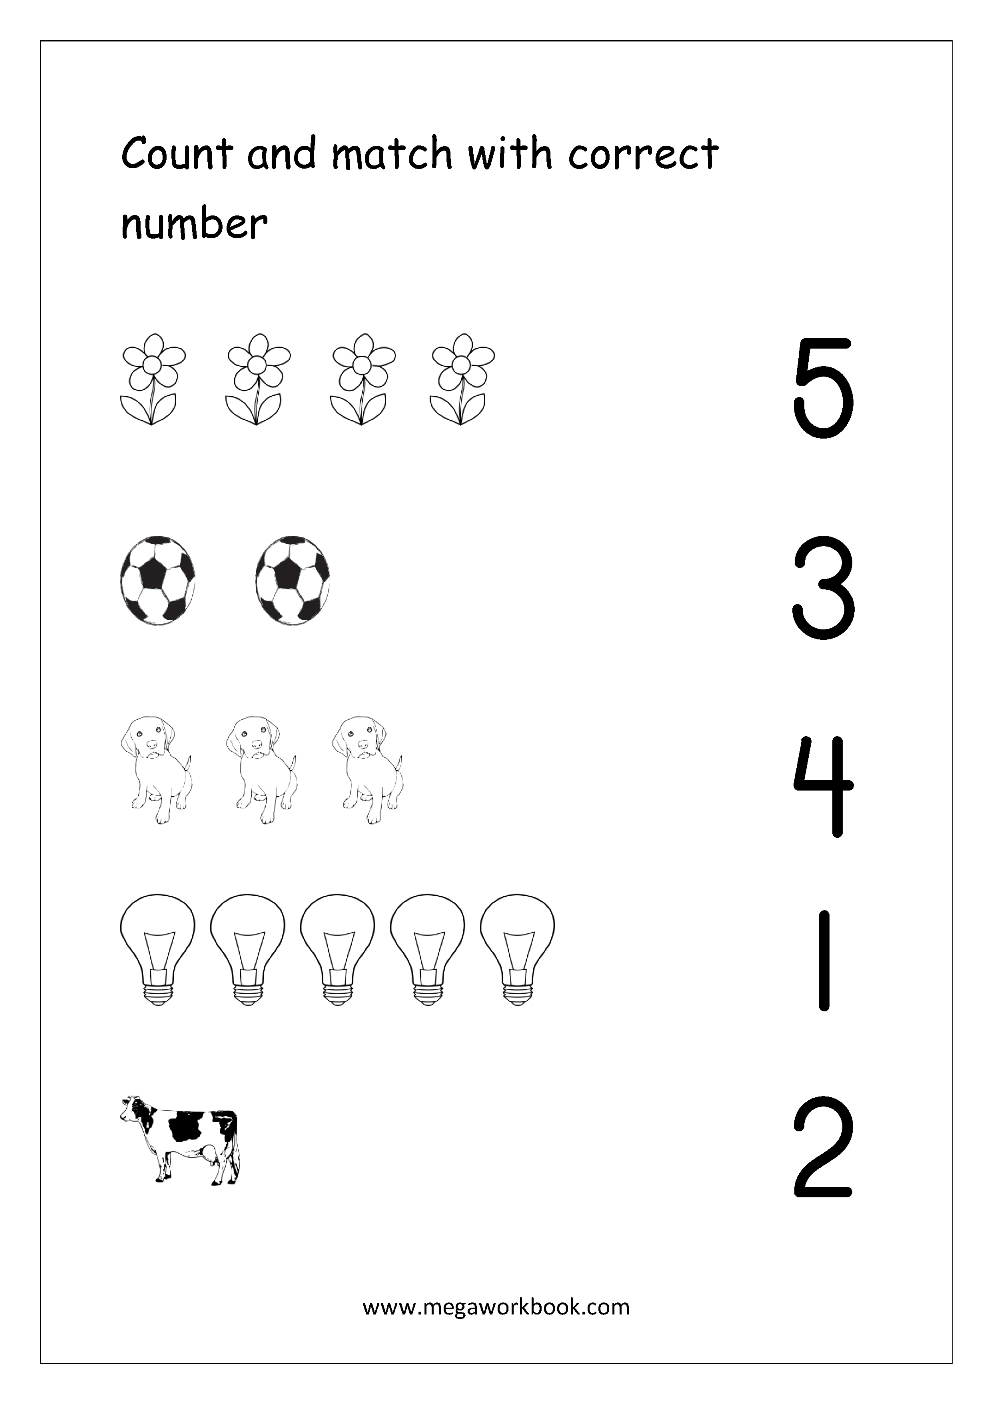 Free Printable Number Matching Worksheets For Kindergarten And | Free Printable Number Worksheets For Kindergarten